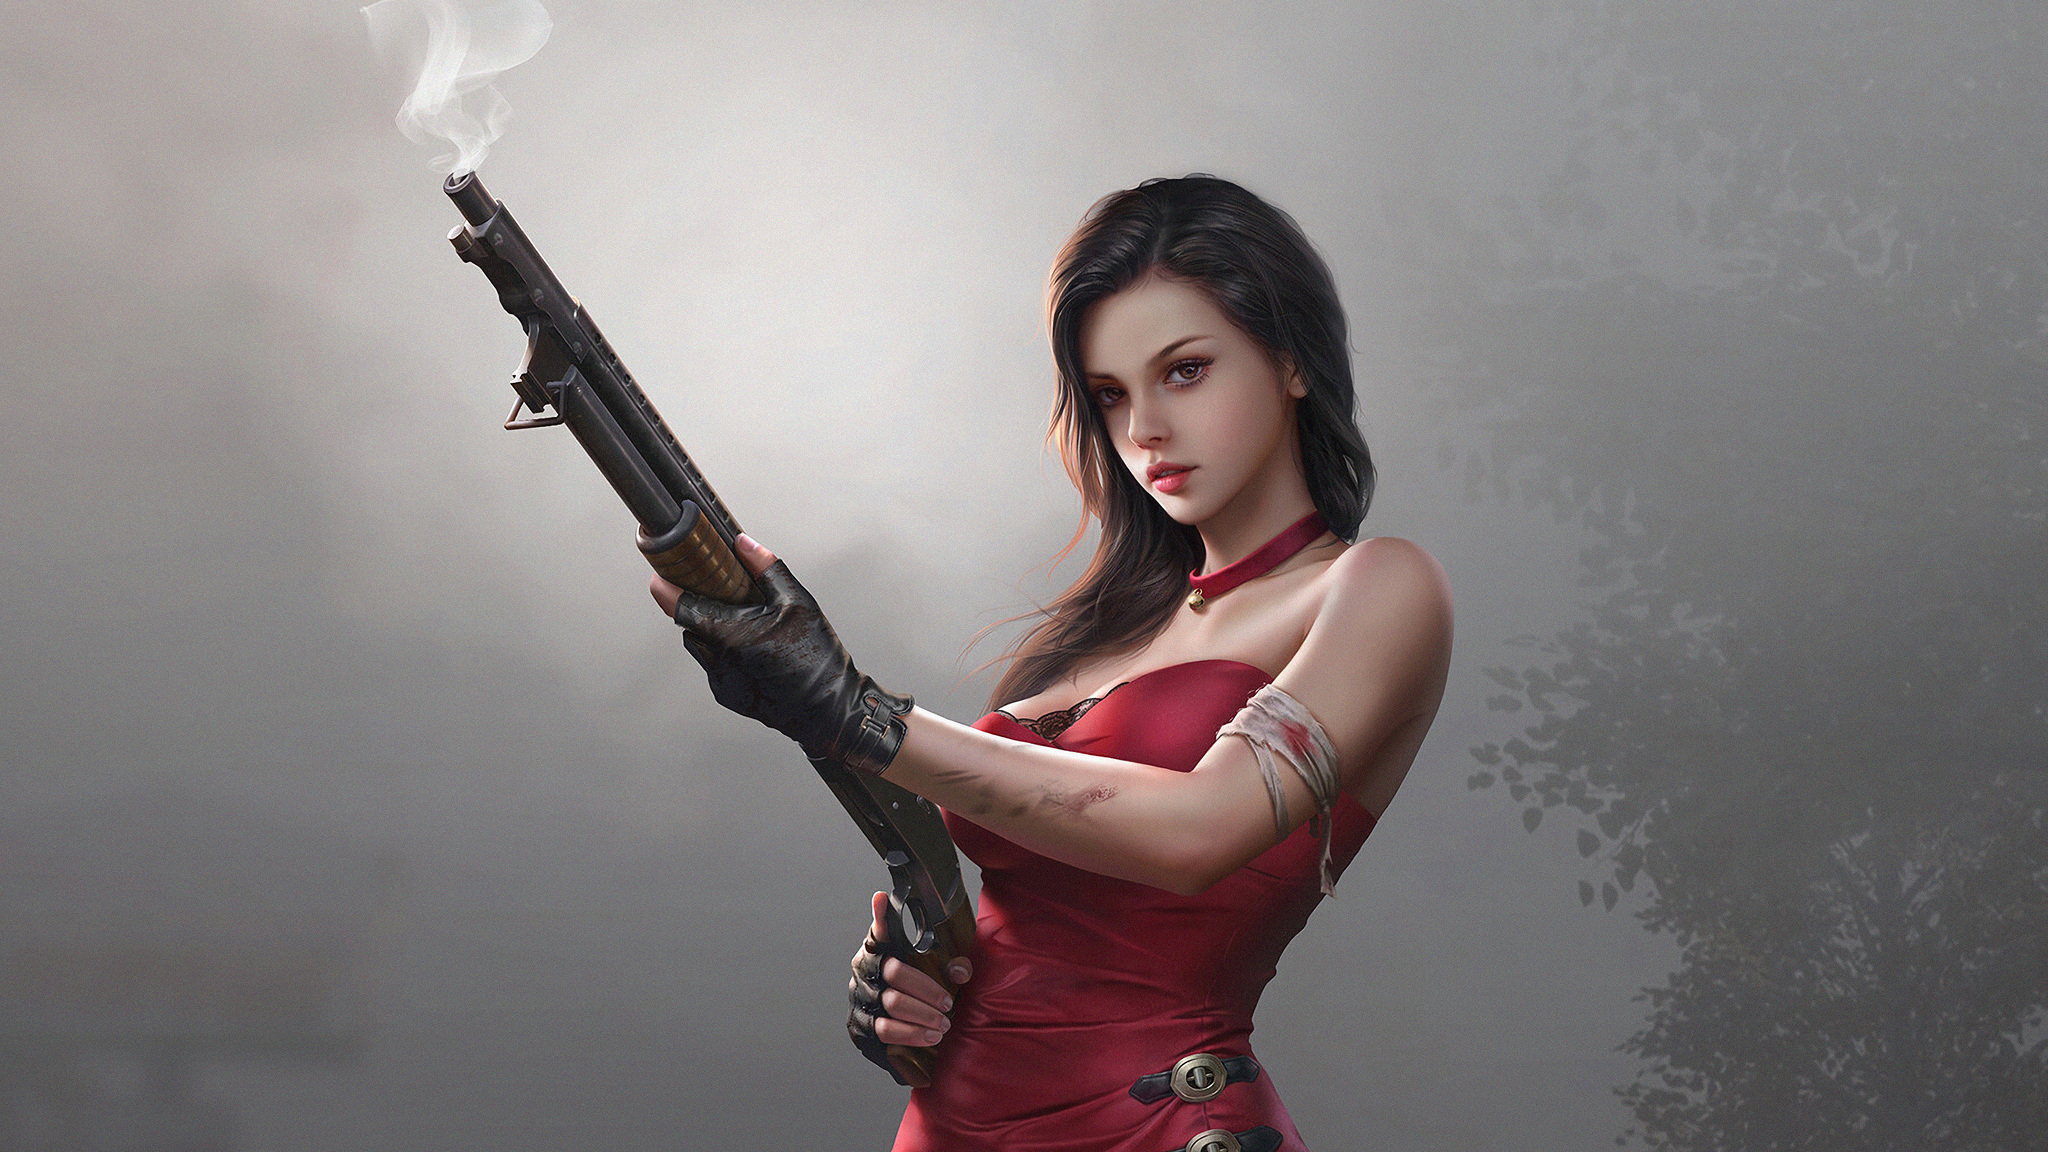 fantasy-girl-in-red-dress-with-gun-4k-lg.jpg